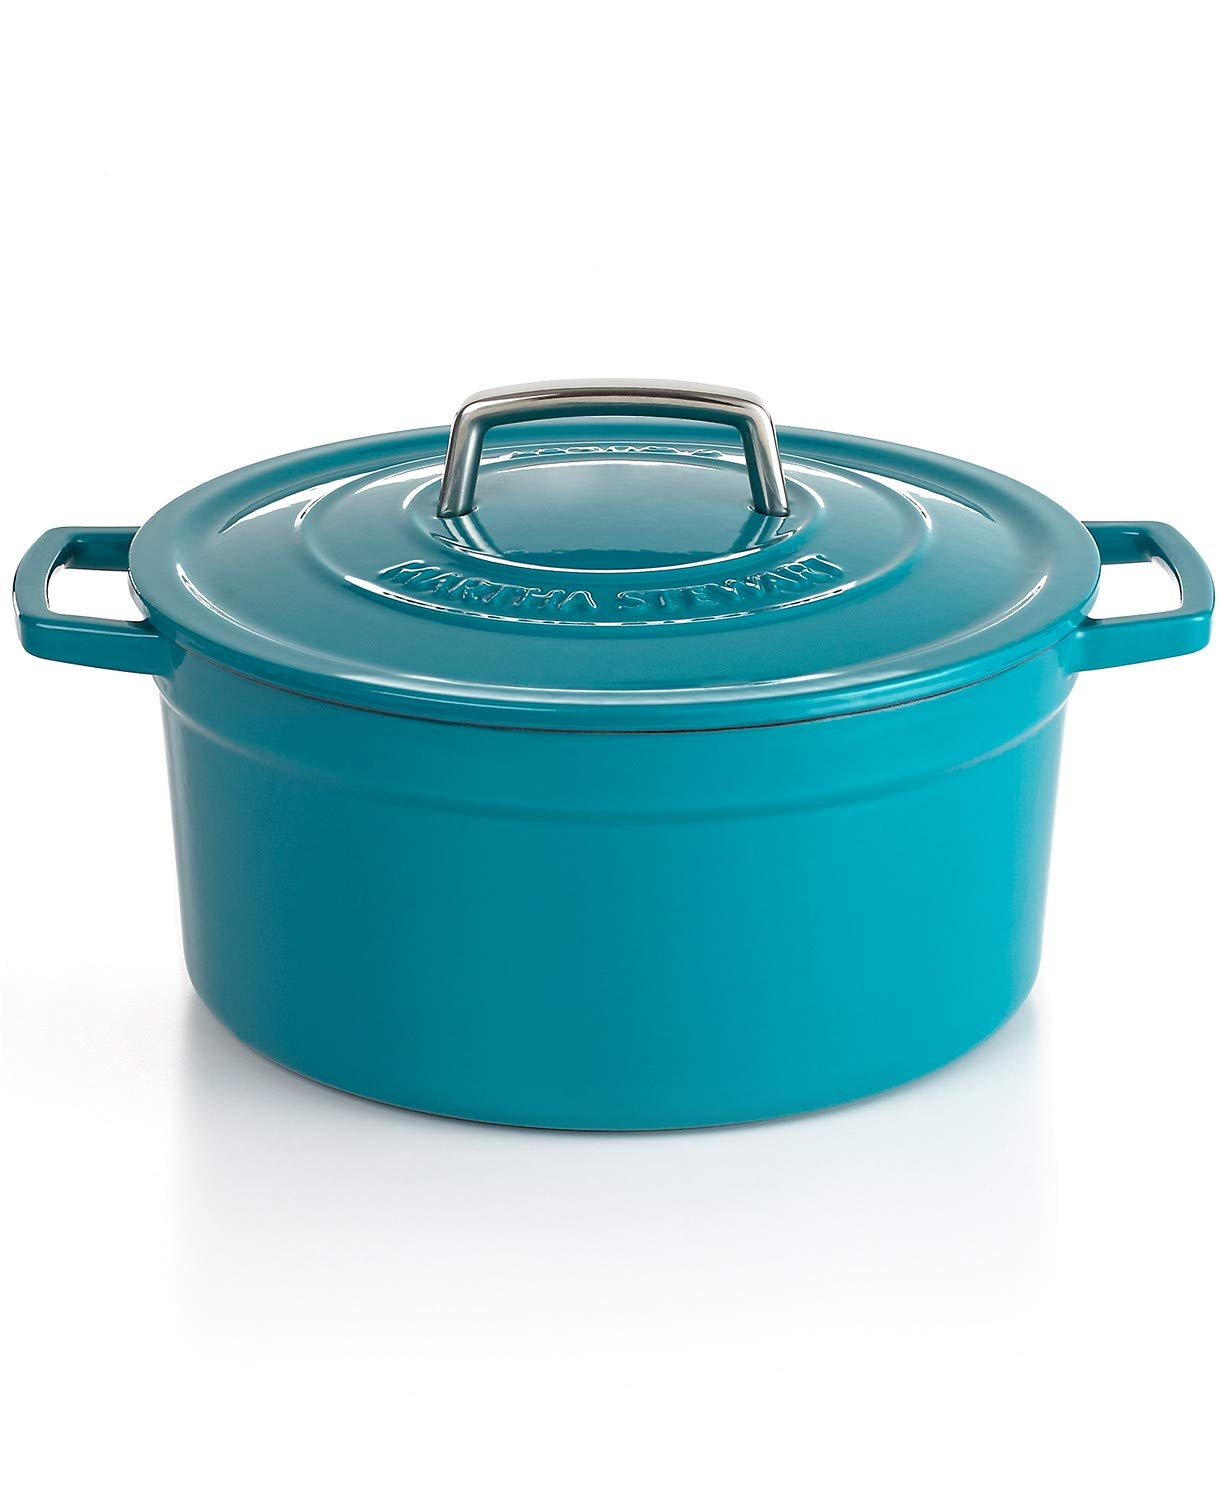 Martha Stewart Teal Blue Enameled Cast Iron 6 Qt. Round Dutch Oven Casserole